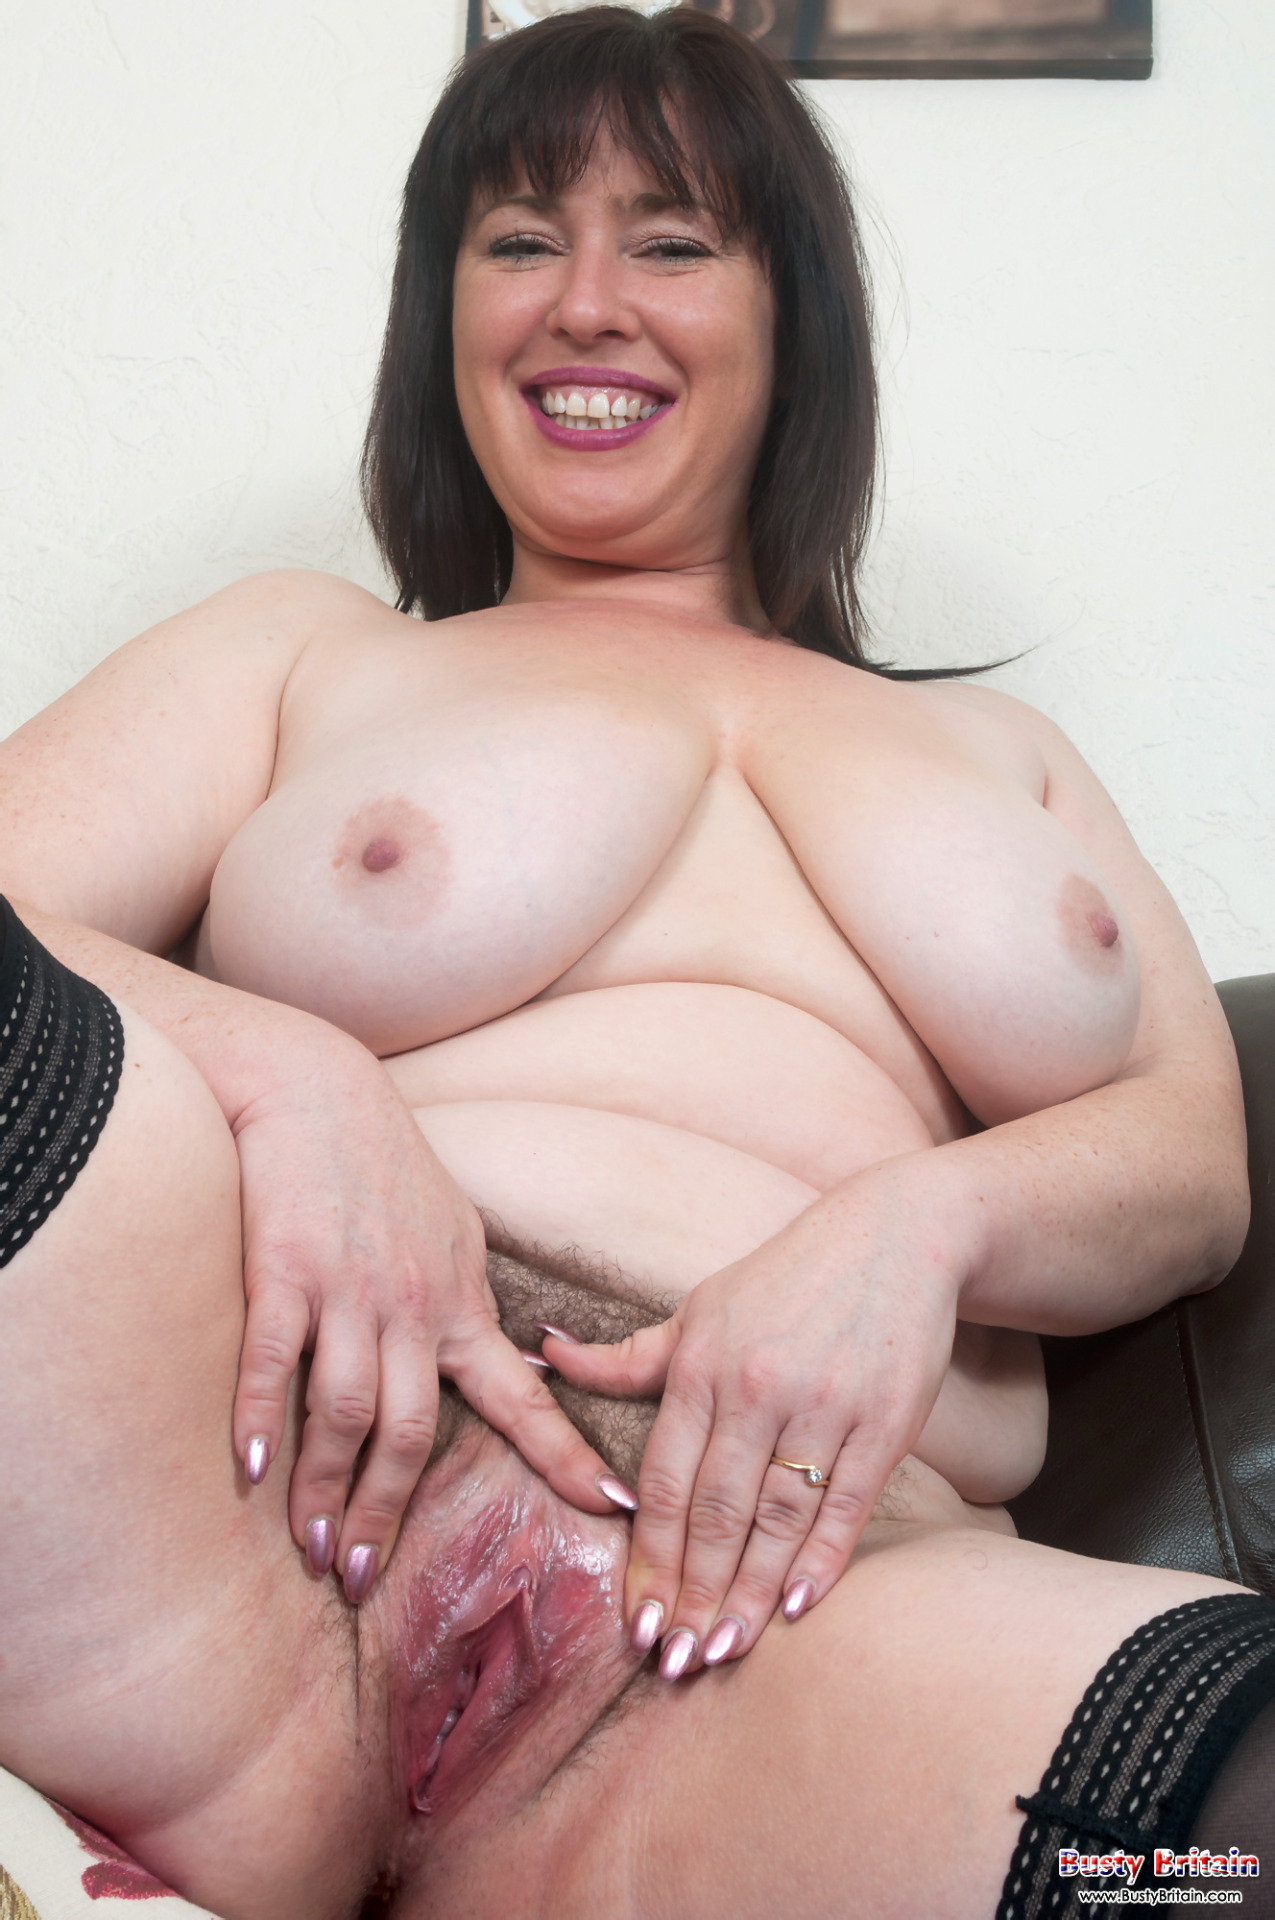 British mature pussy boobs pictures free